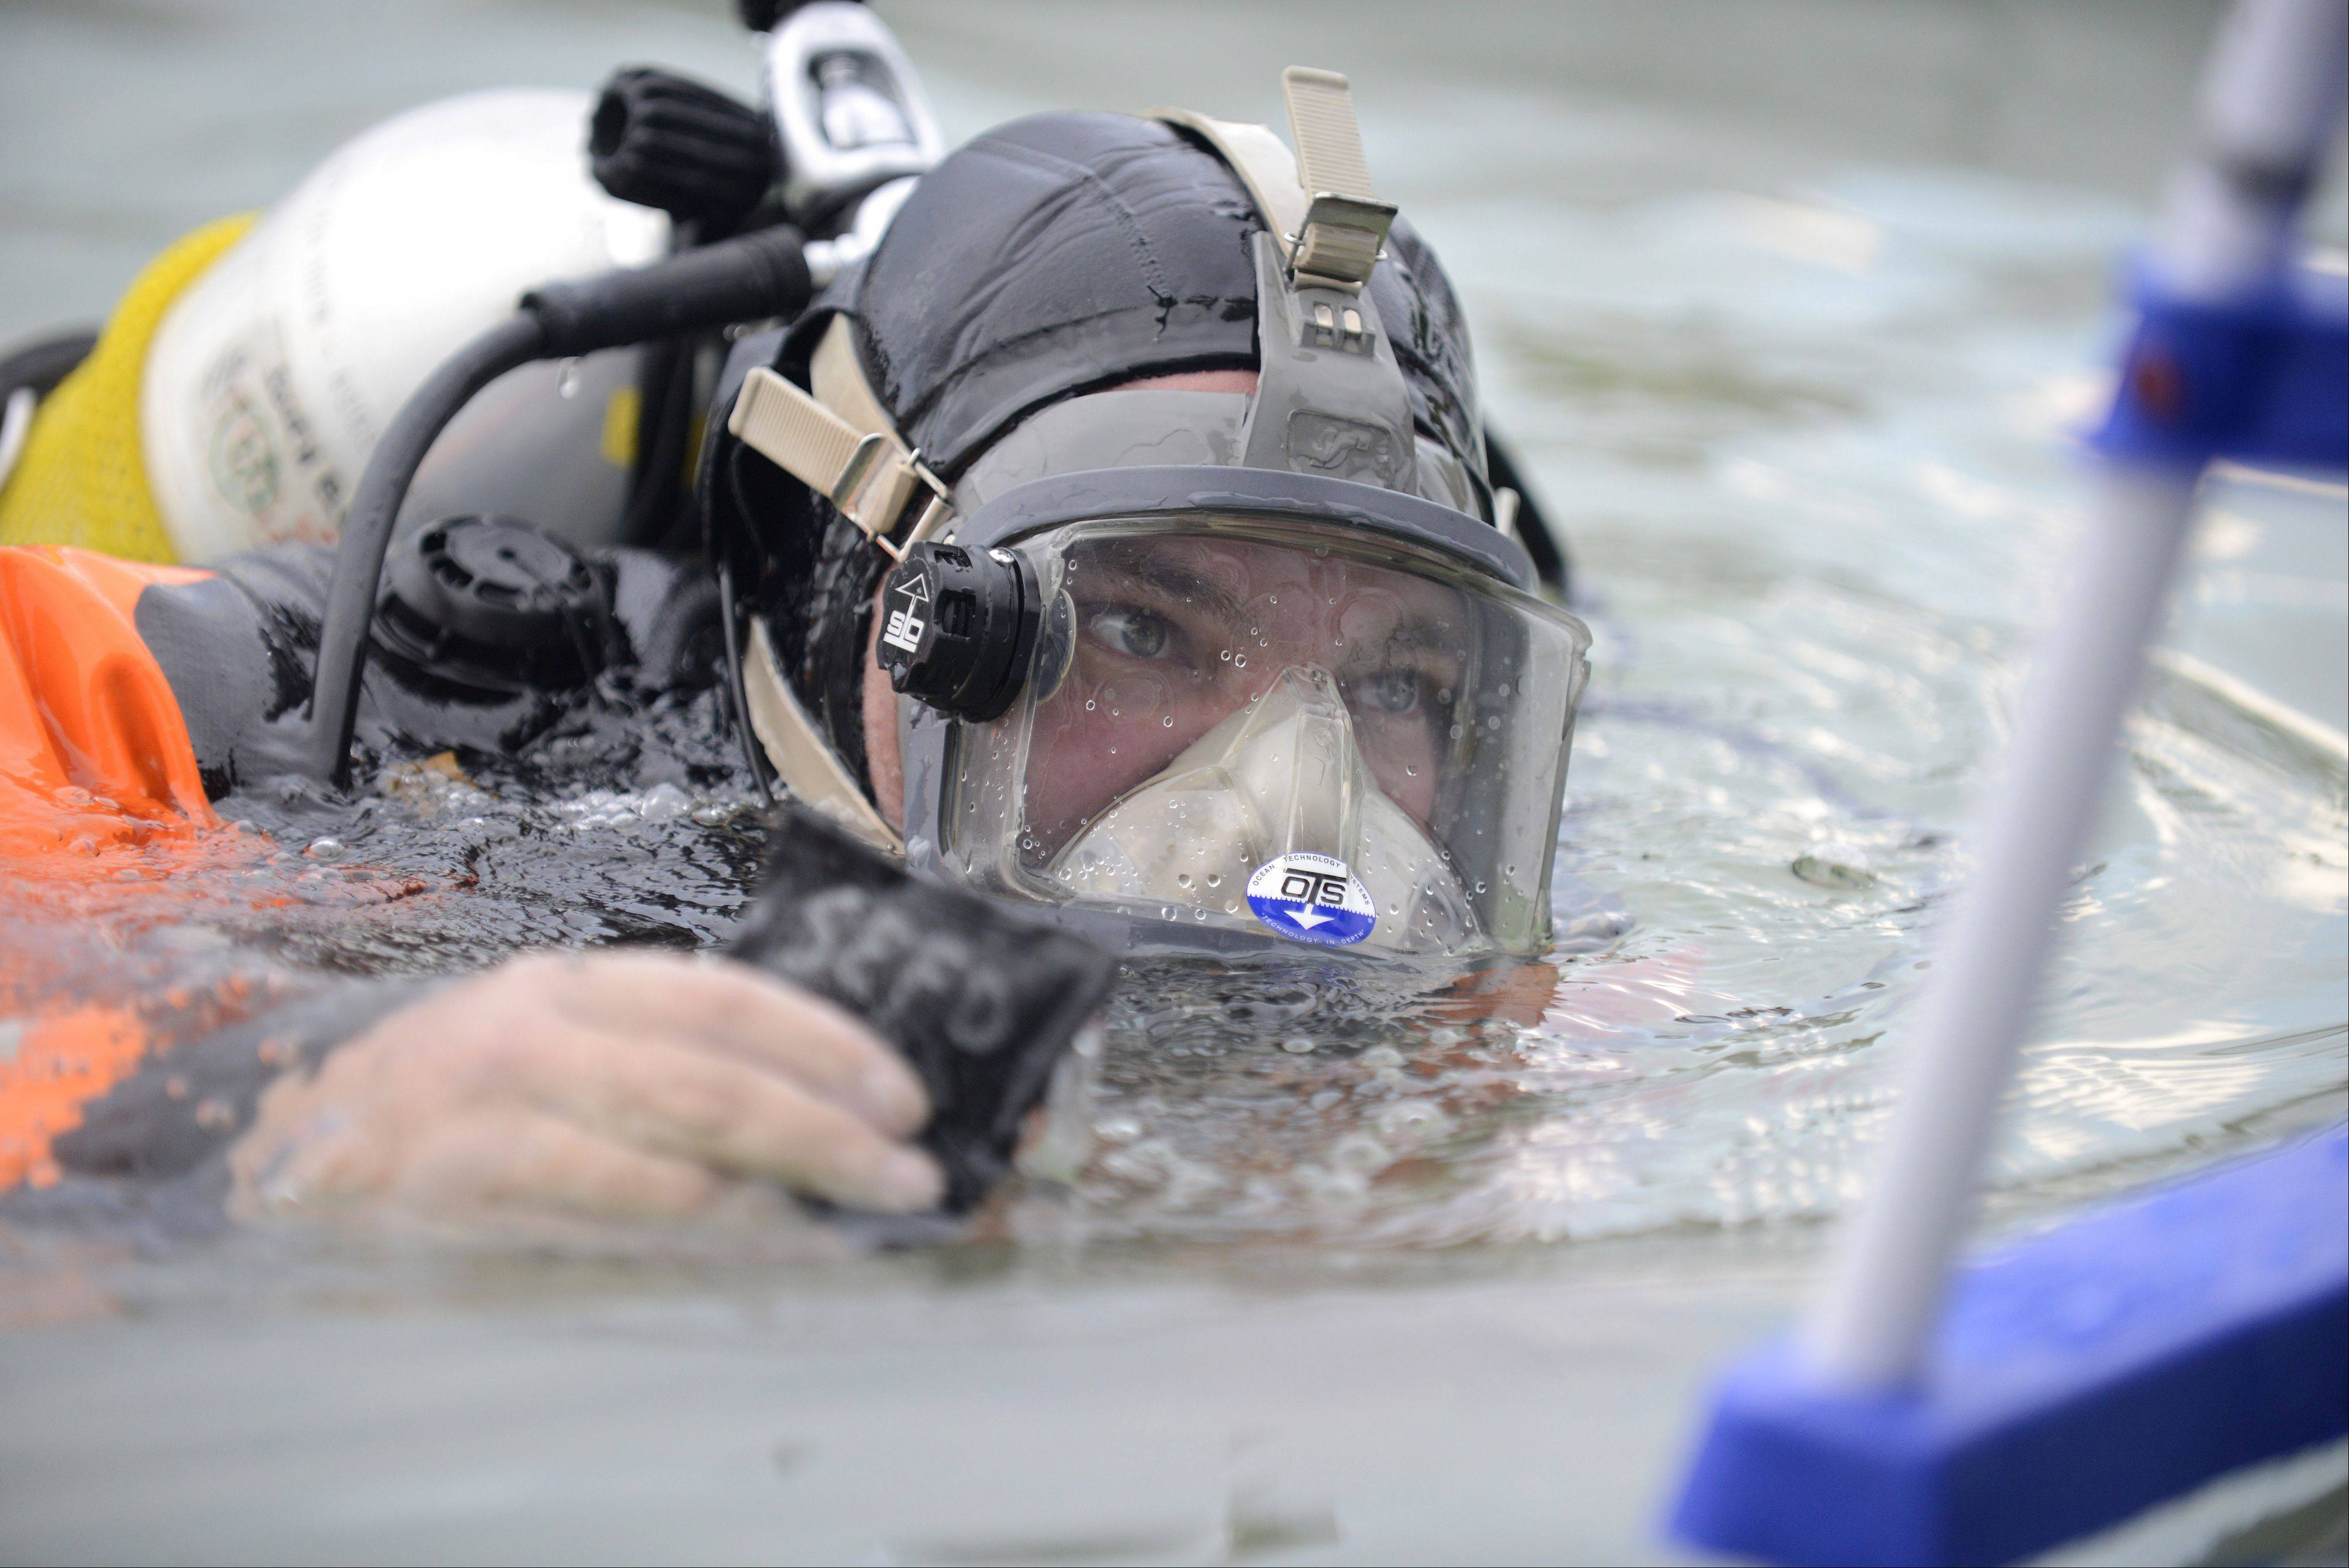 Scott Diehl, a South Elgin fire fighter/paramedic and member of the dive team, brings a retrieved weight out of the water during an interactive dive exercise with the public at South Elgin's National Night Out event in Concord Park on Tuesday, August 6.